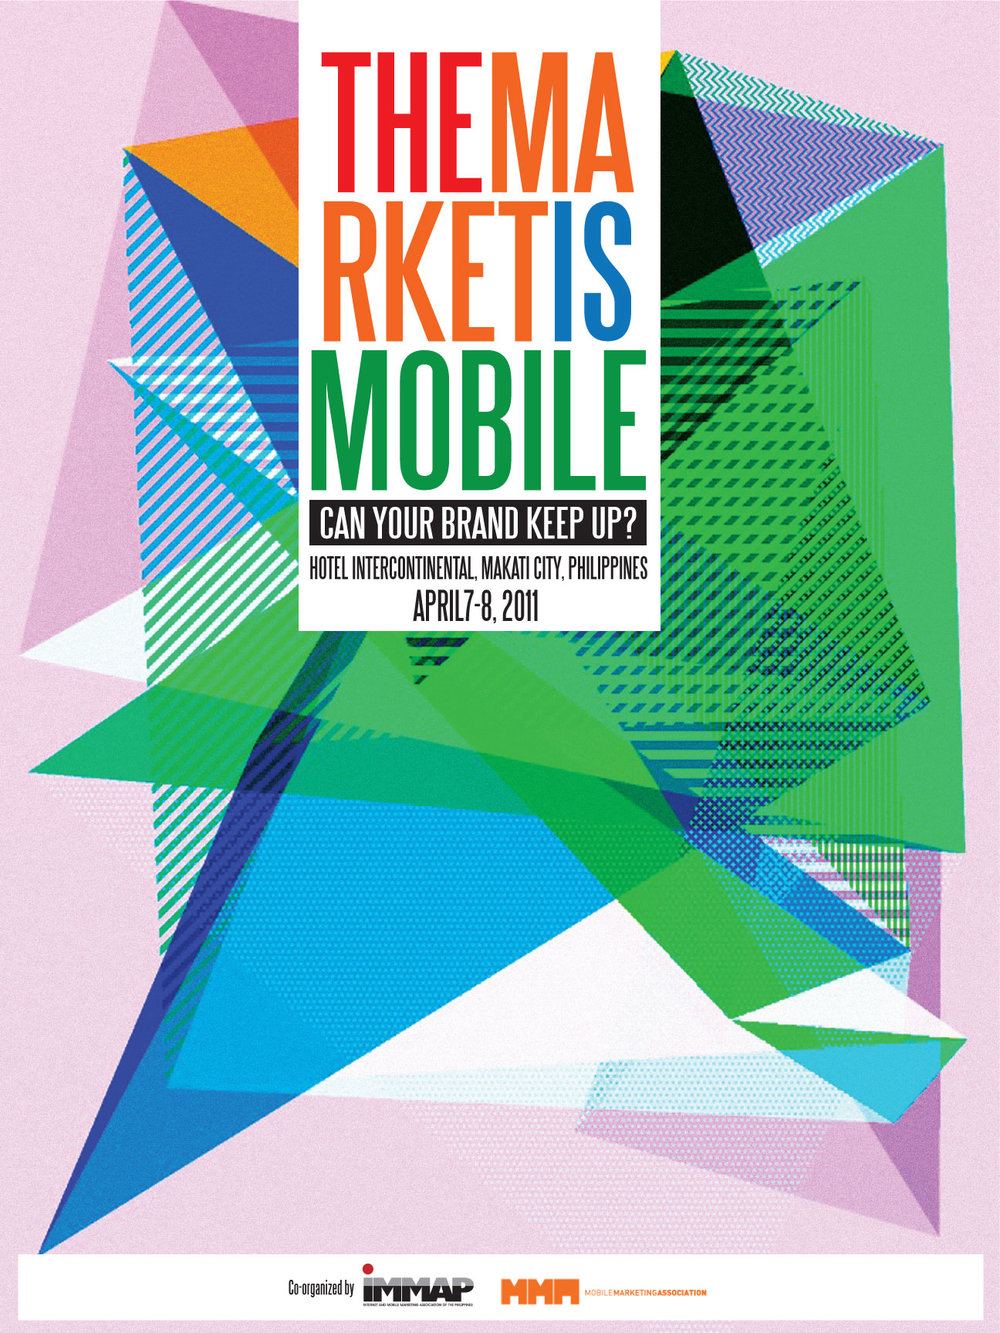 The Market is Mobile